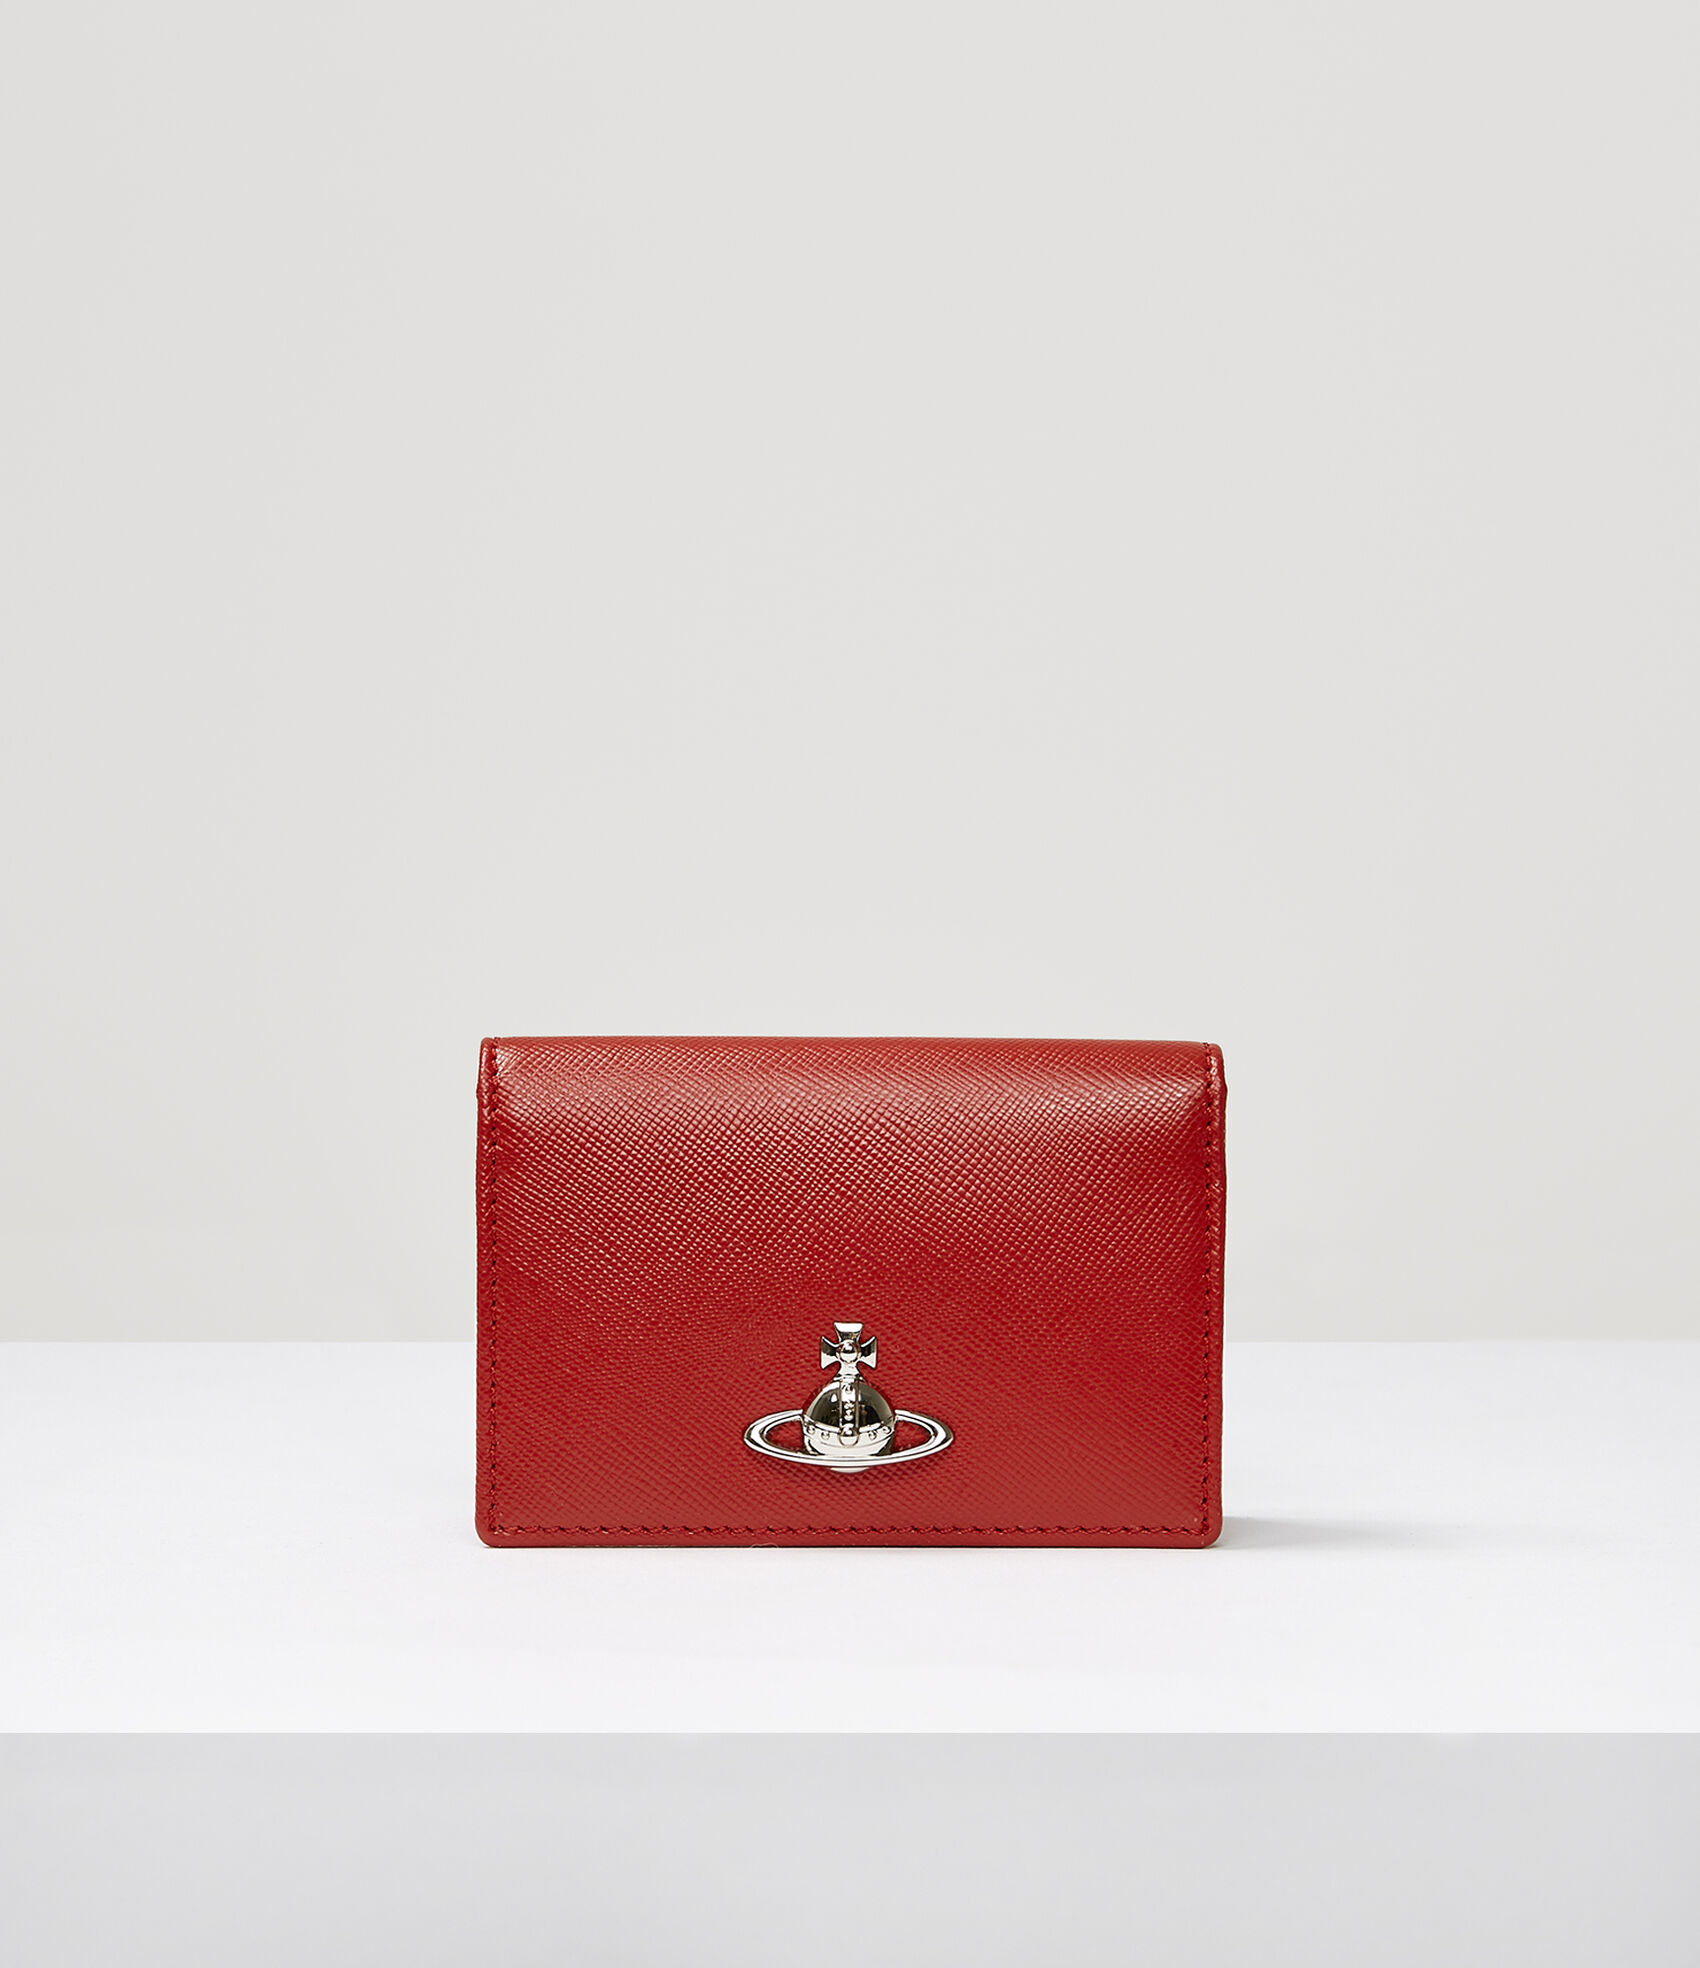 Vivienne Westwood PIMLICO CARD HOLDER RED